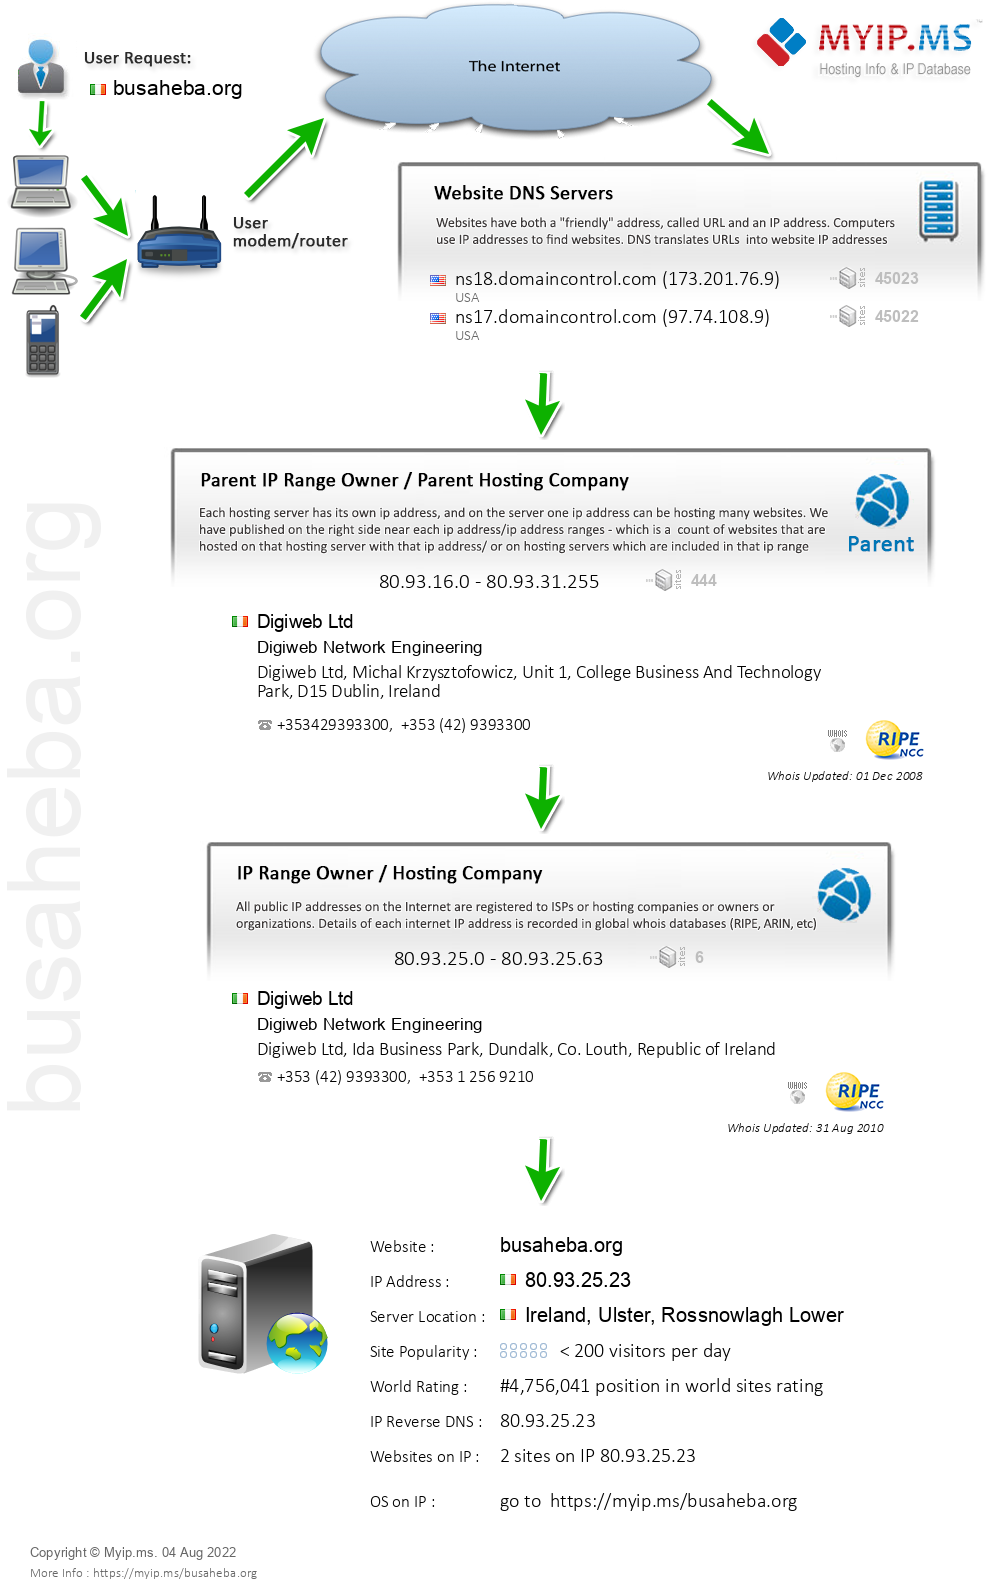 Busaheba.org - Website Hosting Visual IP Diagram